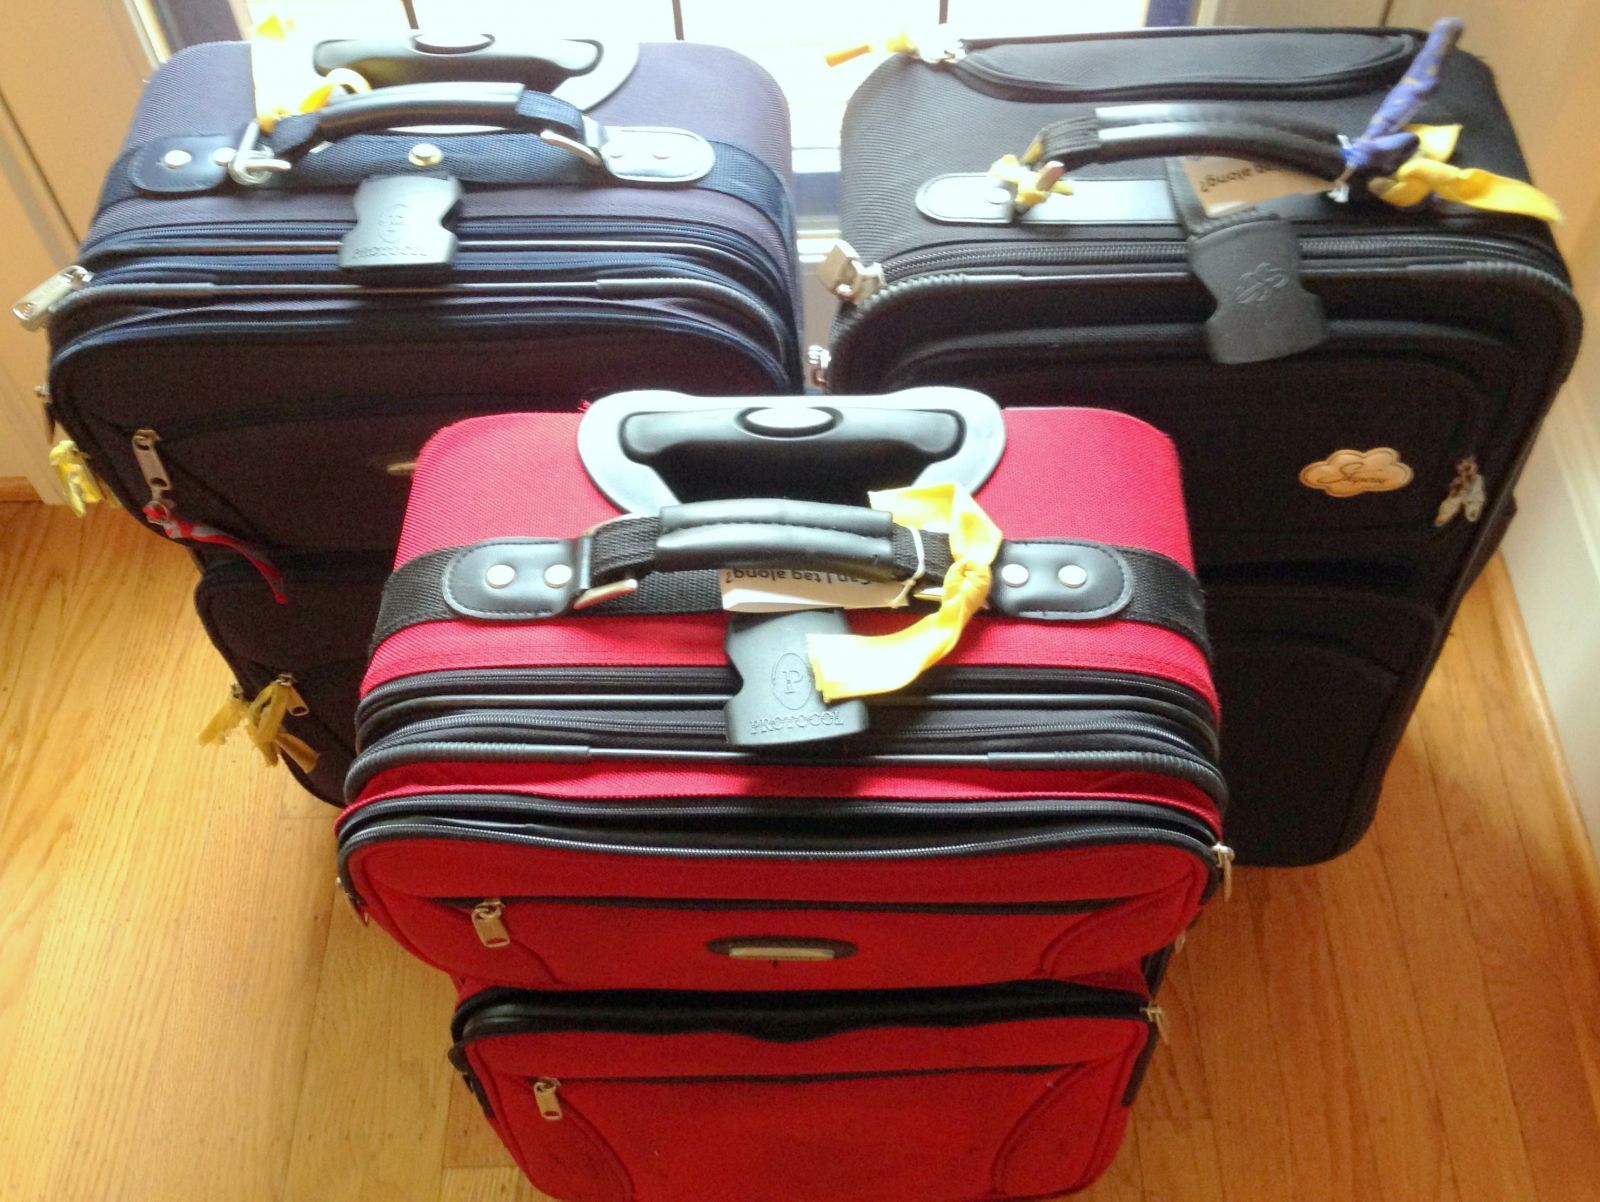 family luggage markers to buy diy ideas to always spot your bags. Black Bedroom Furniture Sets. Home Design Ideas